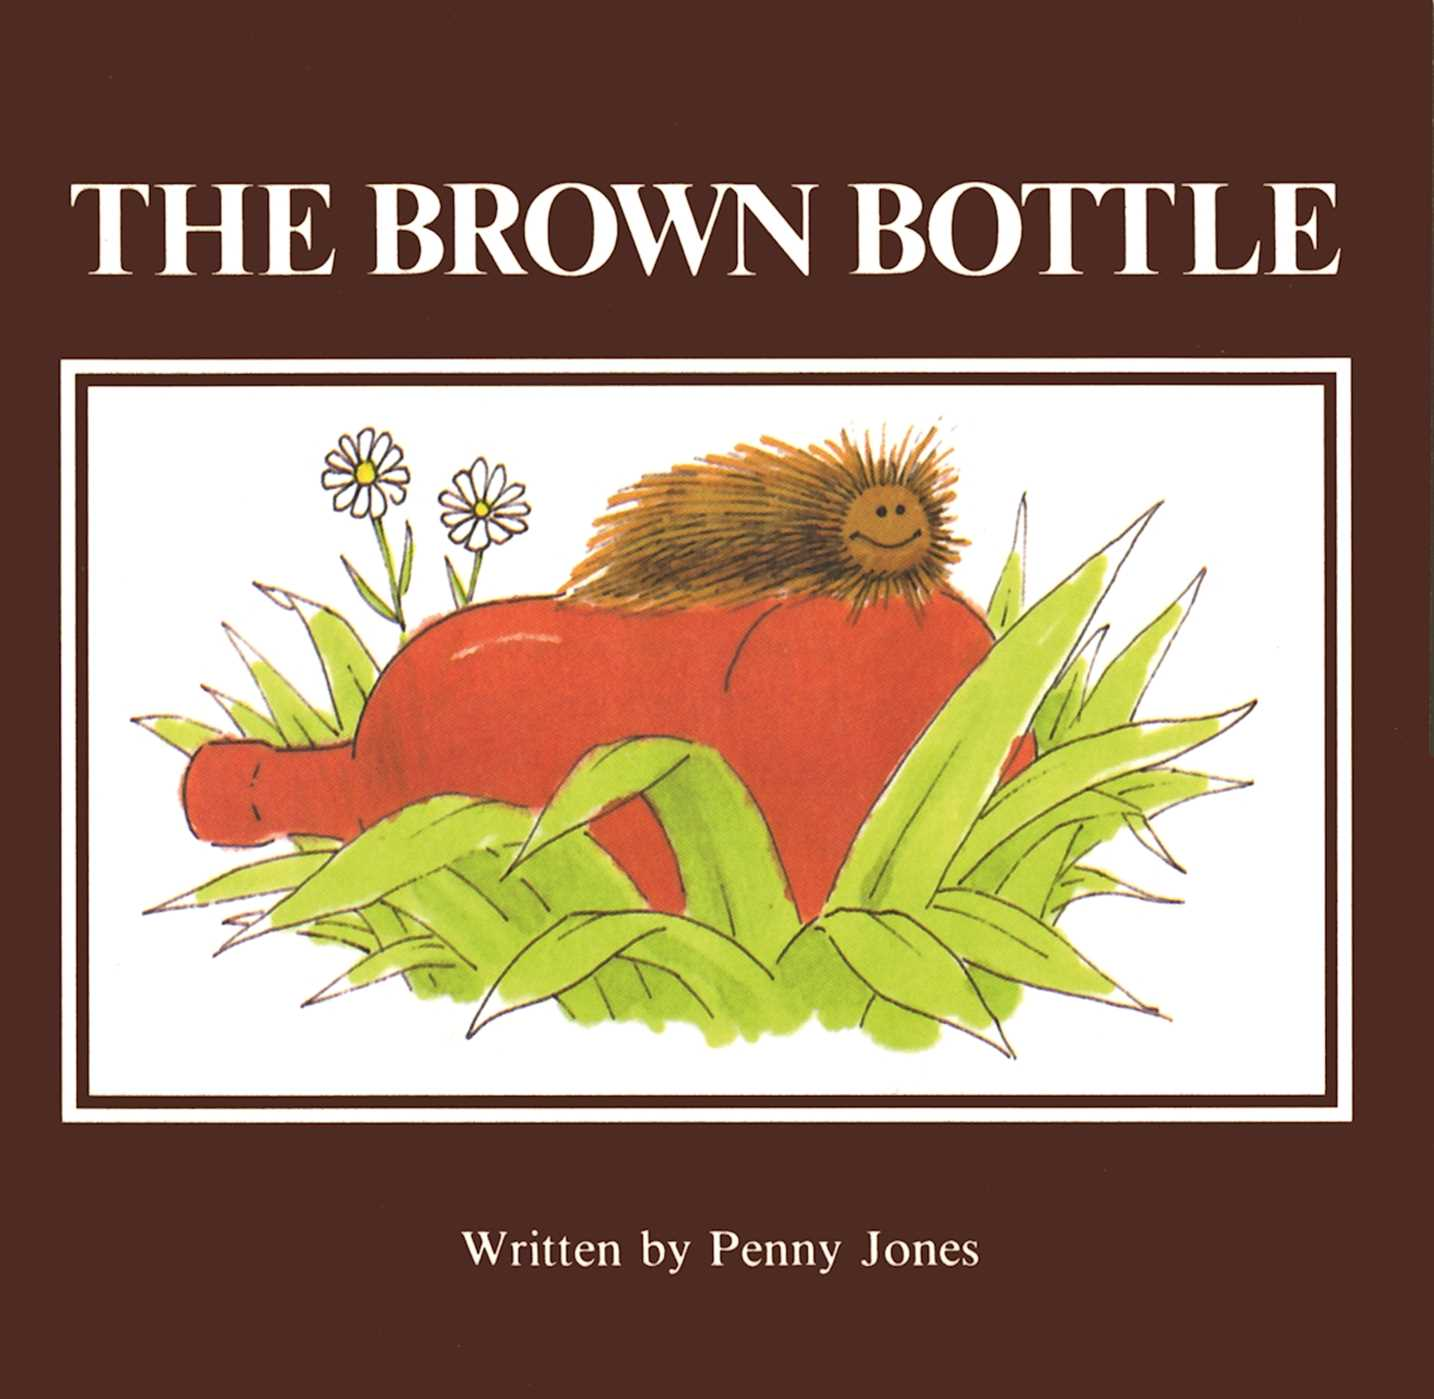 The Brown Bottle